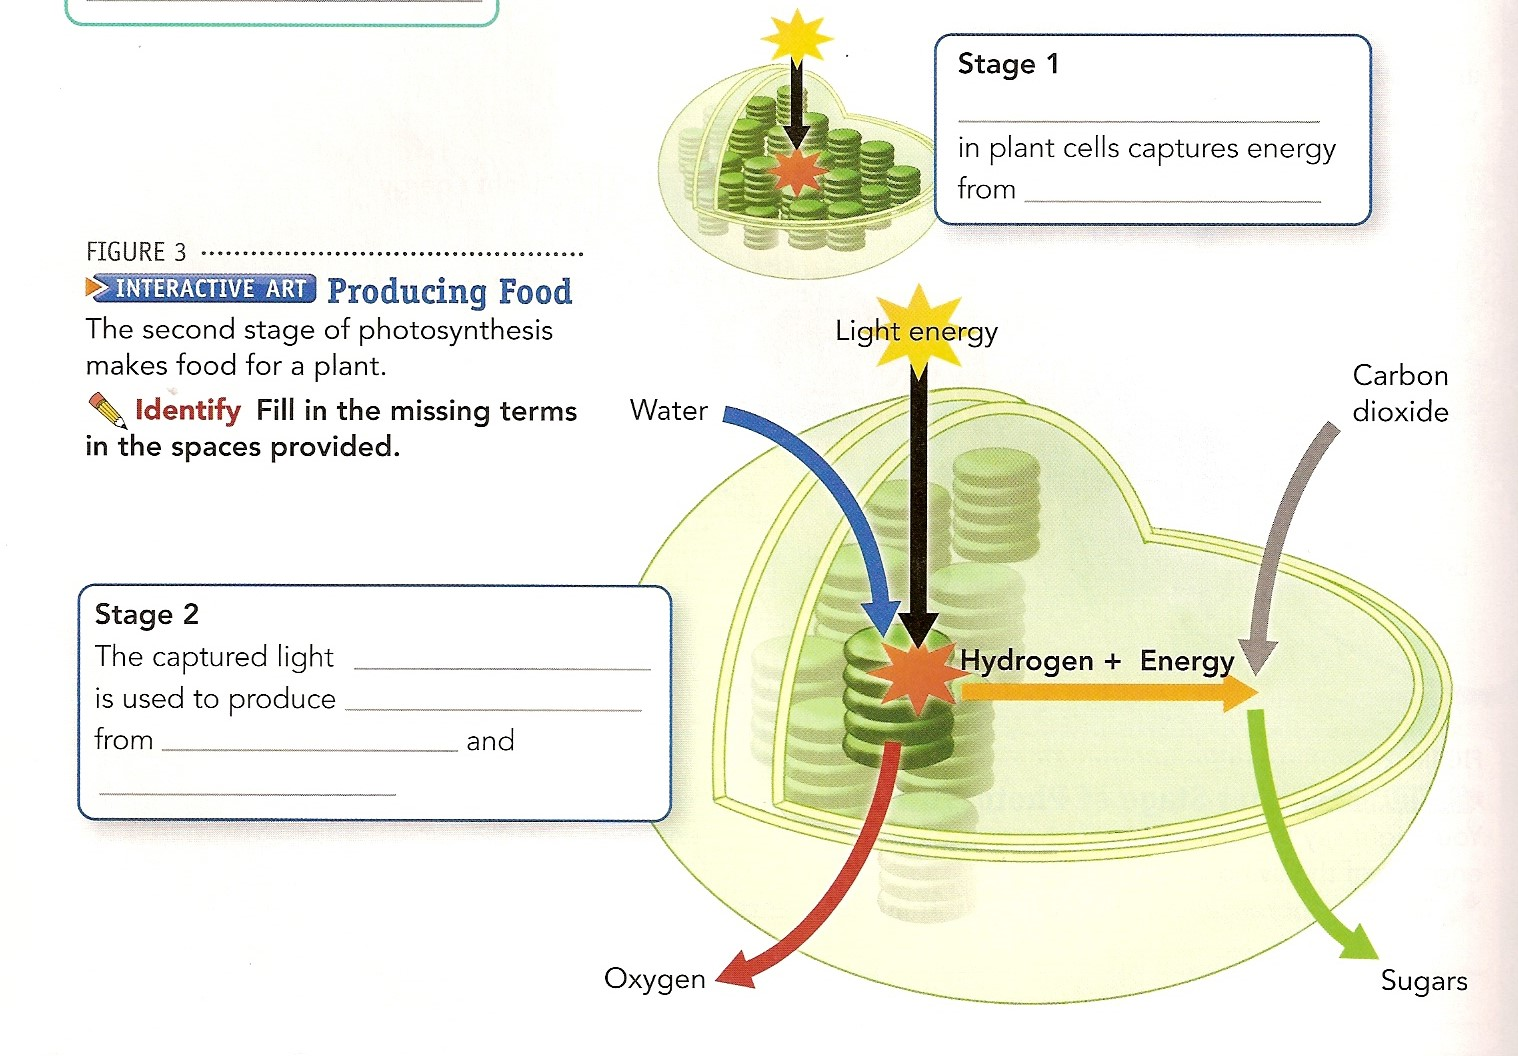 Notebook pages mrs stolting science handout diagram of photosynthesis with fill in the blanks 17 handout diagram of cellular respiration with fill in the blanks ccuart Image collections